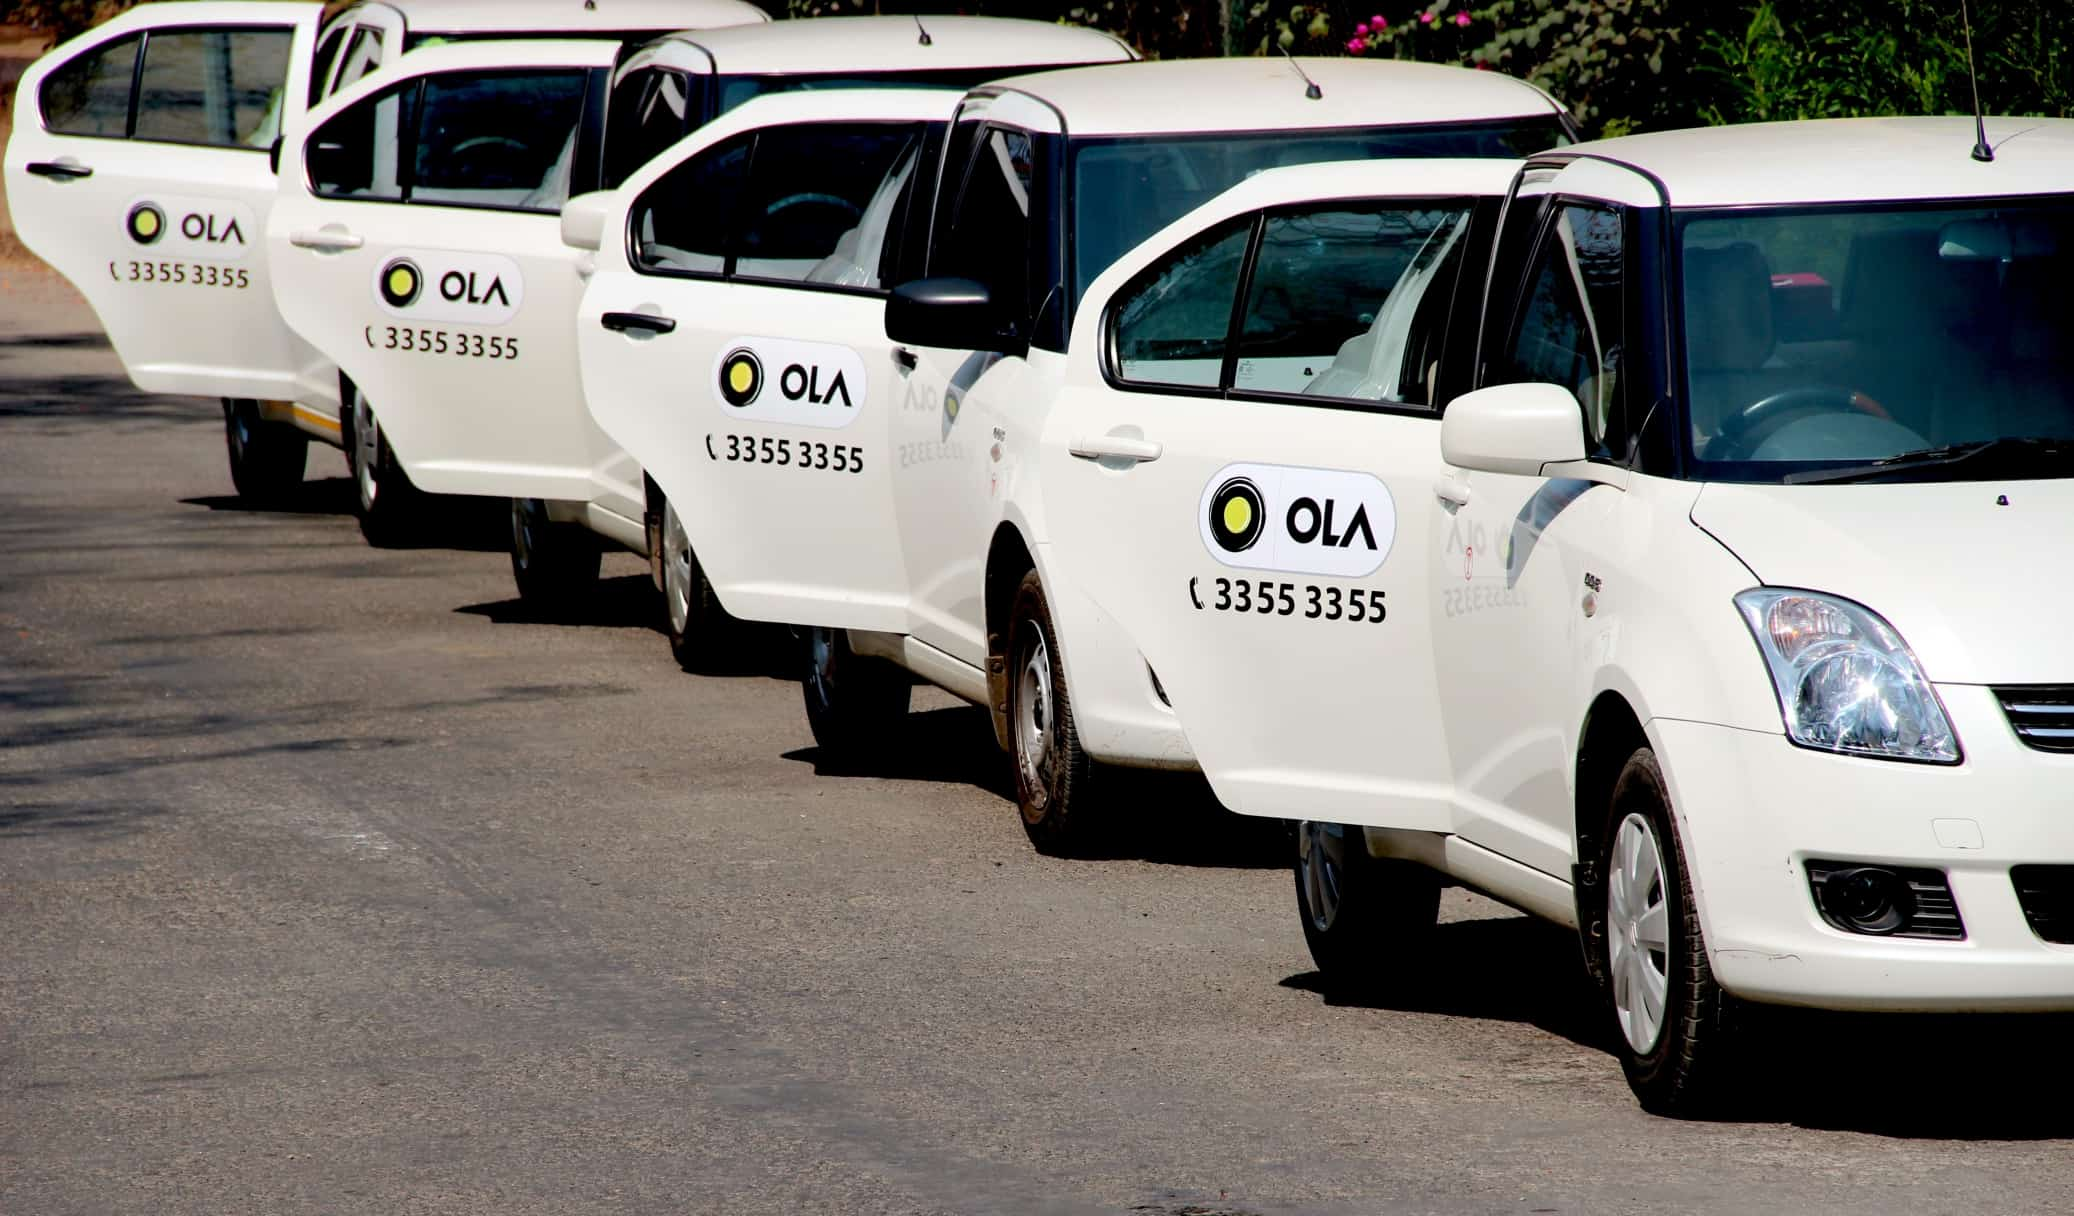 Ola White Taxis In A Row